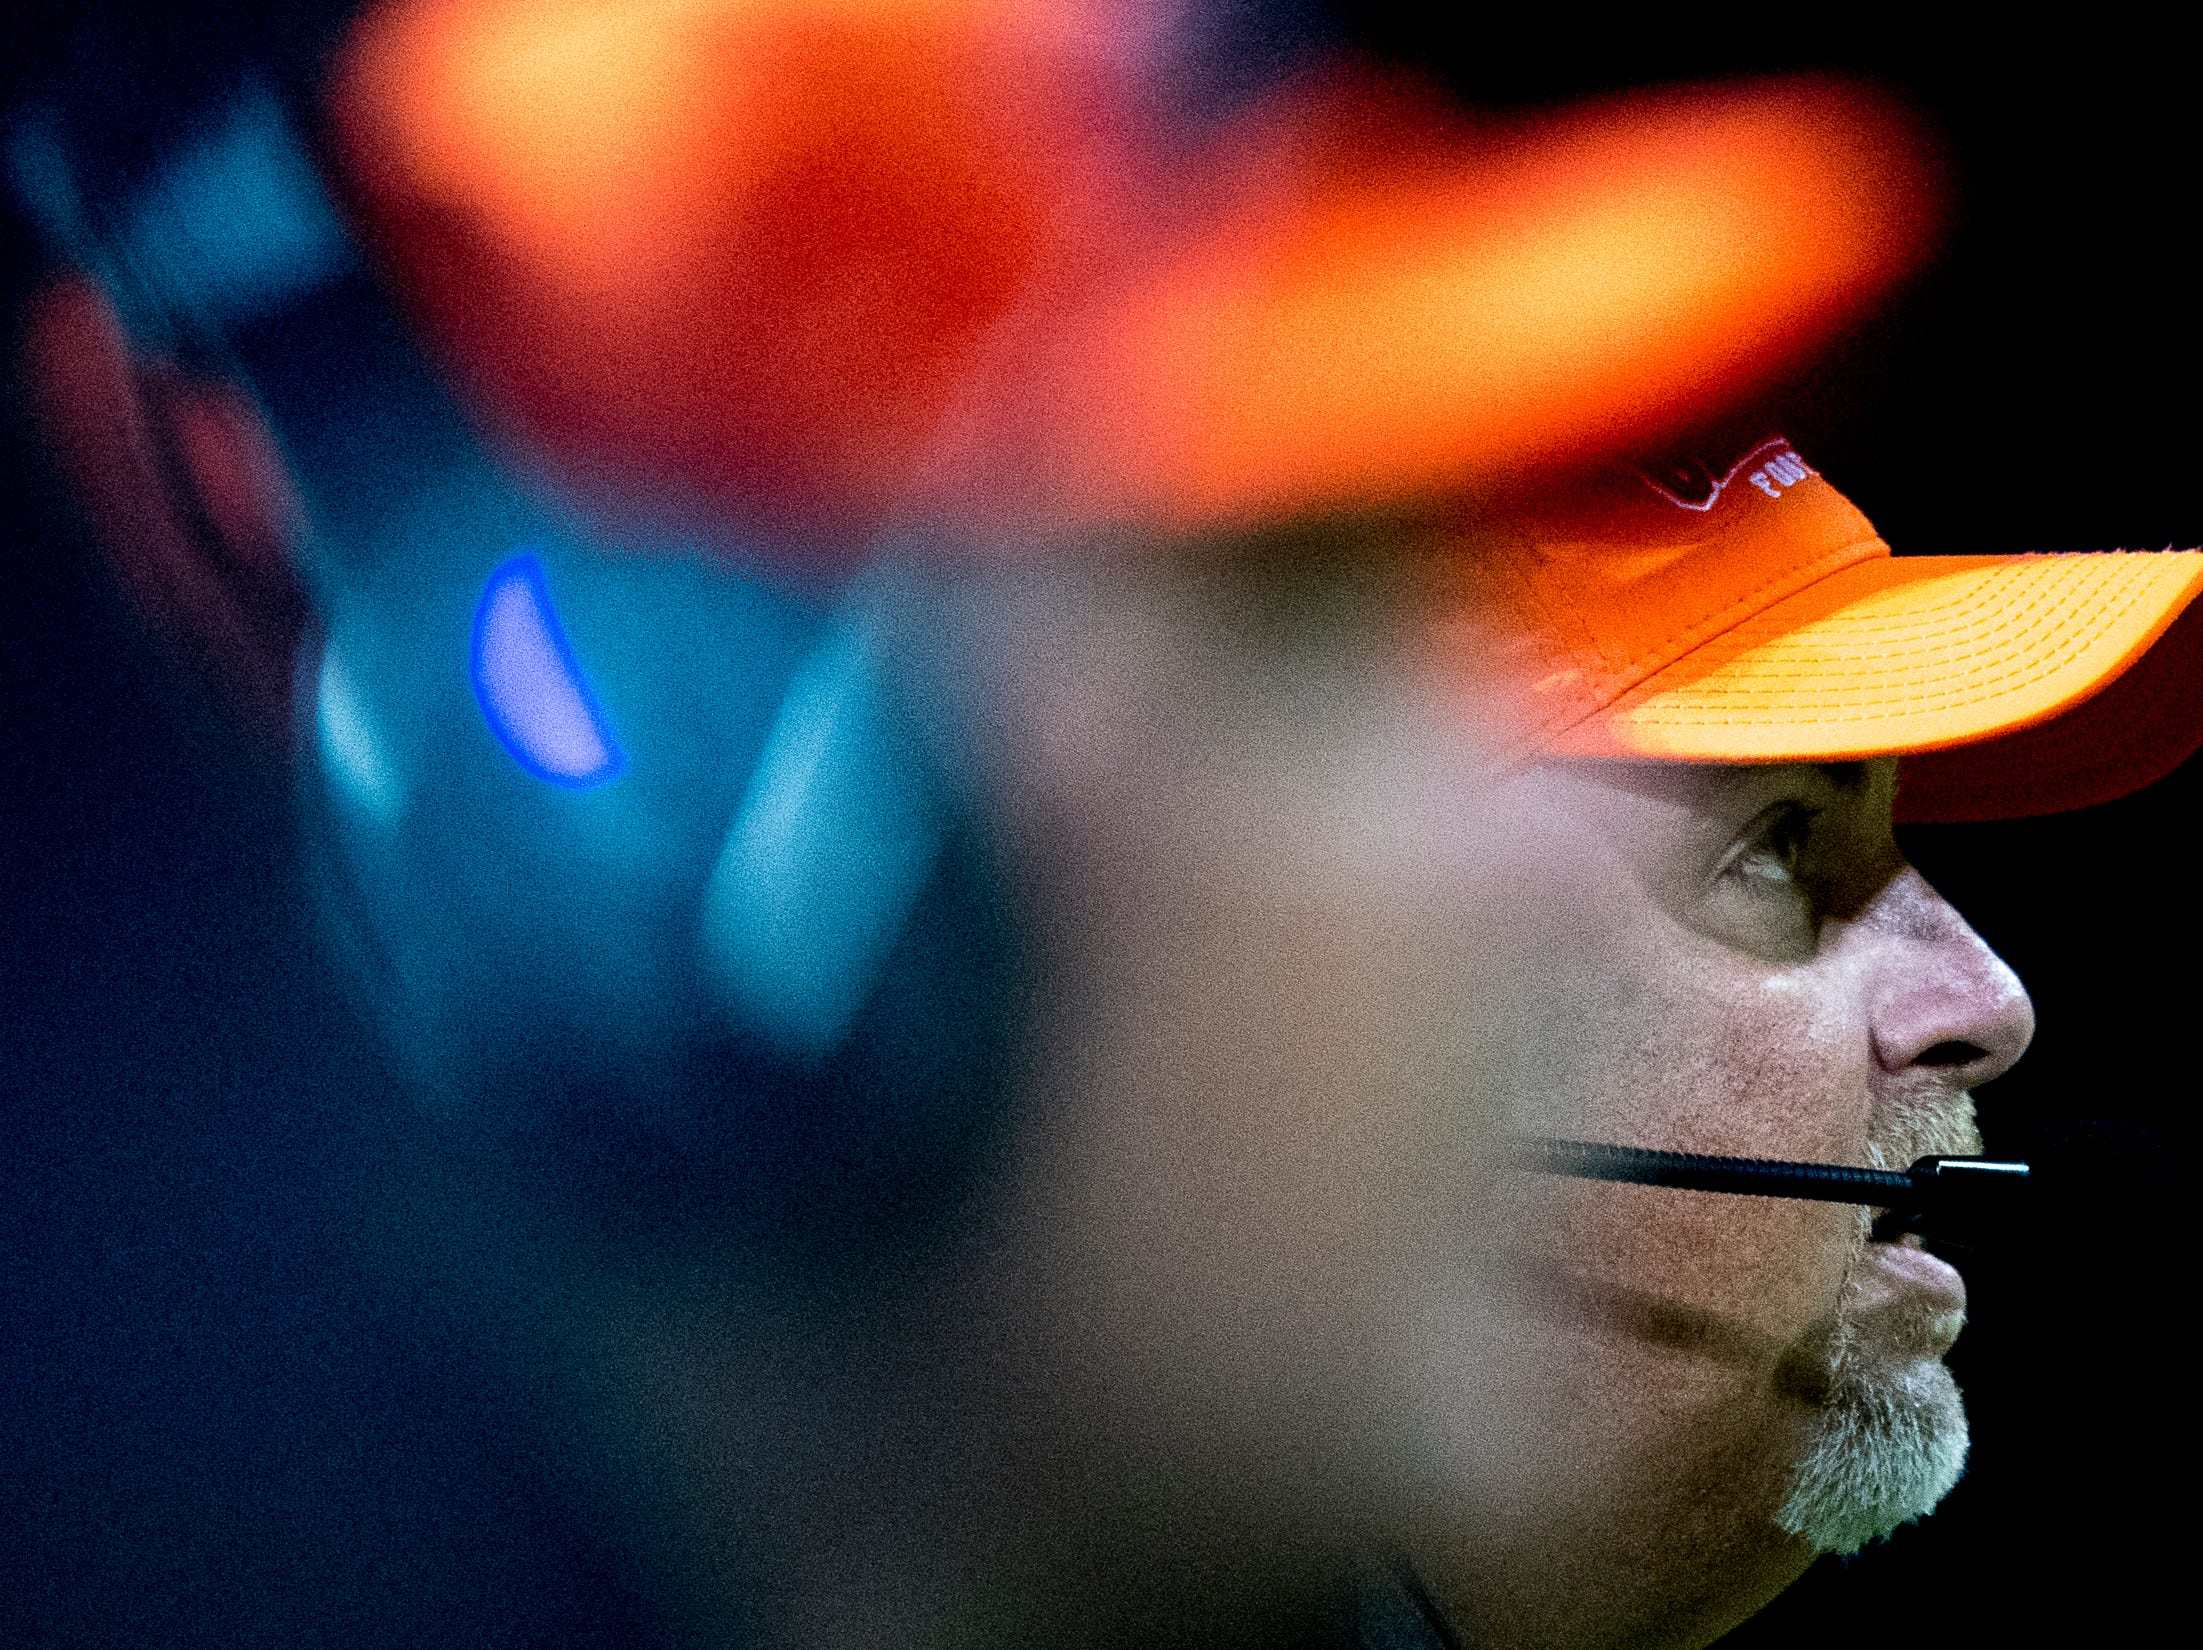 Greenback Head Coach Greg Ryan eyes the game during a football game between Greenback and Grace Christian at Greenback High School in Greenback, Tennessee on Thursday, September 20, 2018.